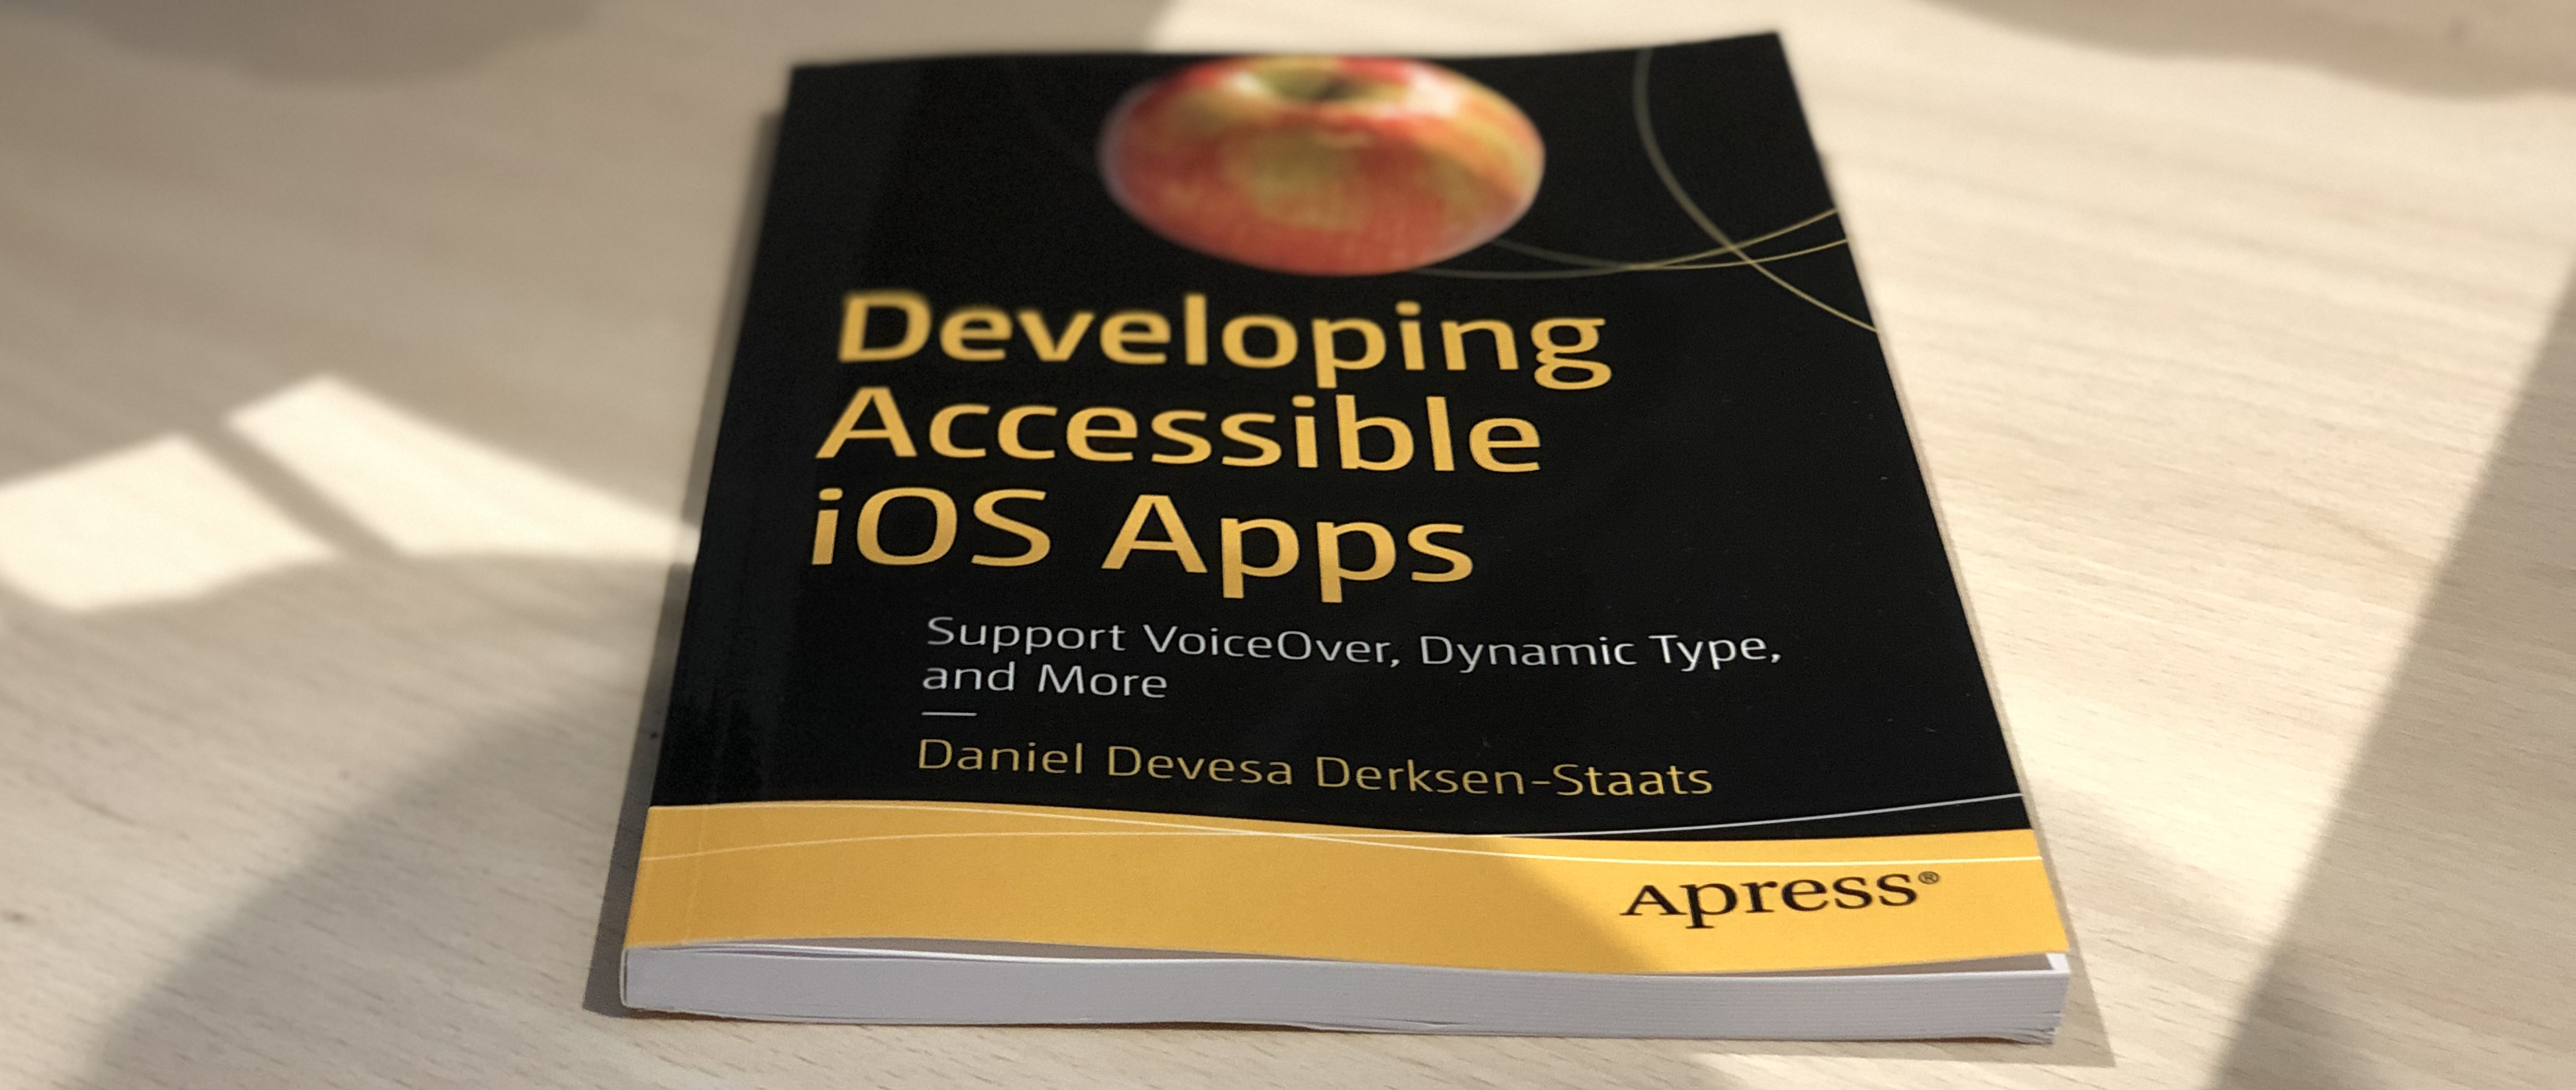 Developing Accessible iOS Apps book by Daniel Devesa Derksen-Staats. Support VoiceOver, Dynamic Type and More. Apress.